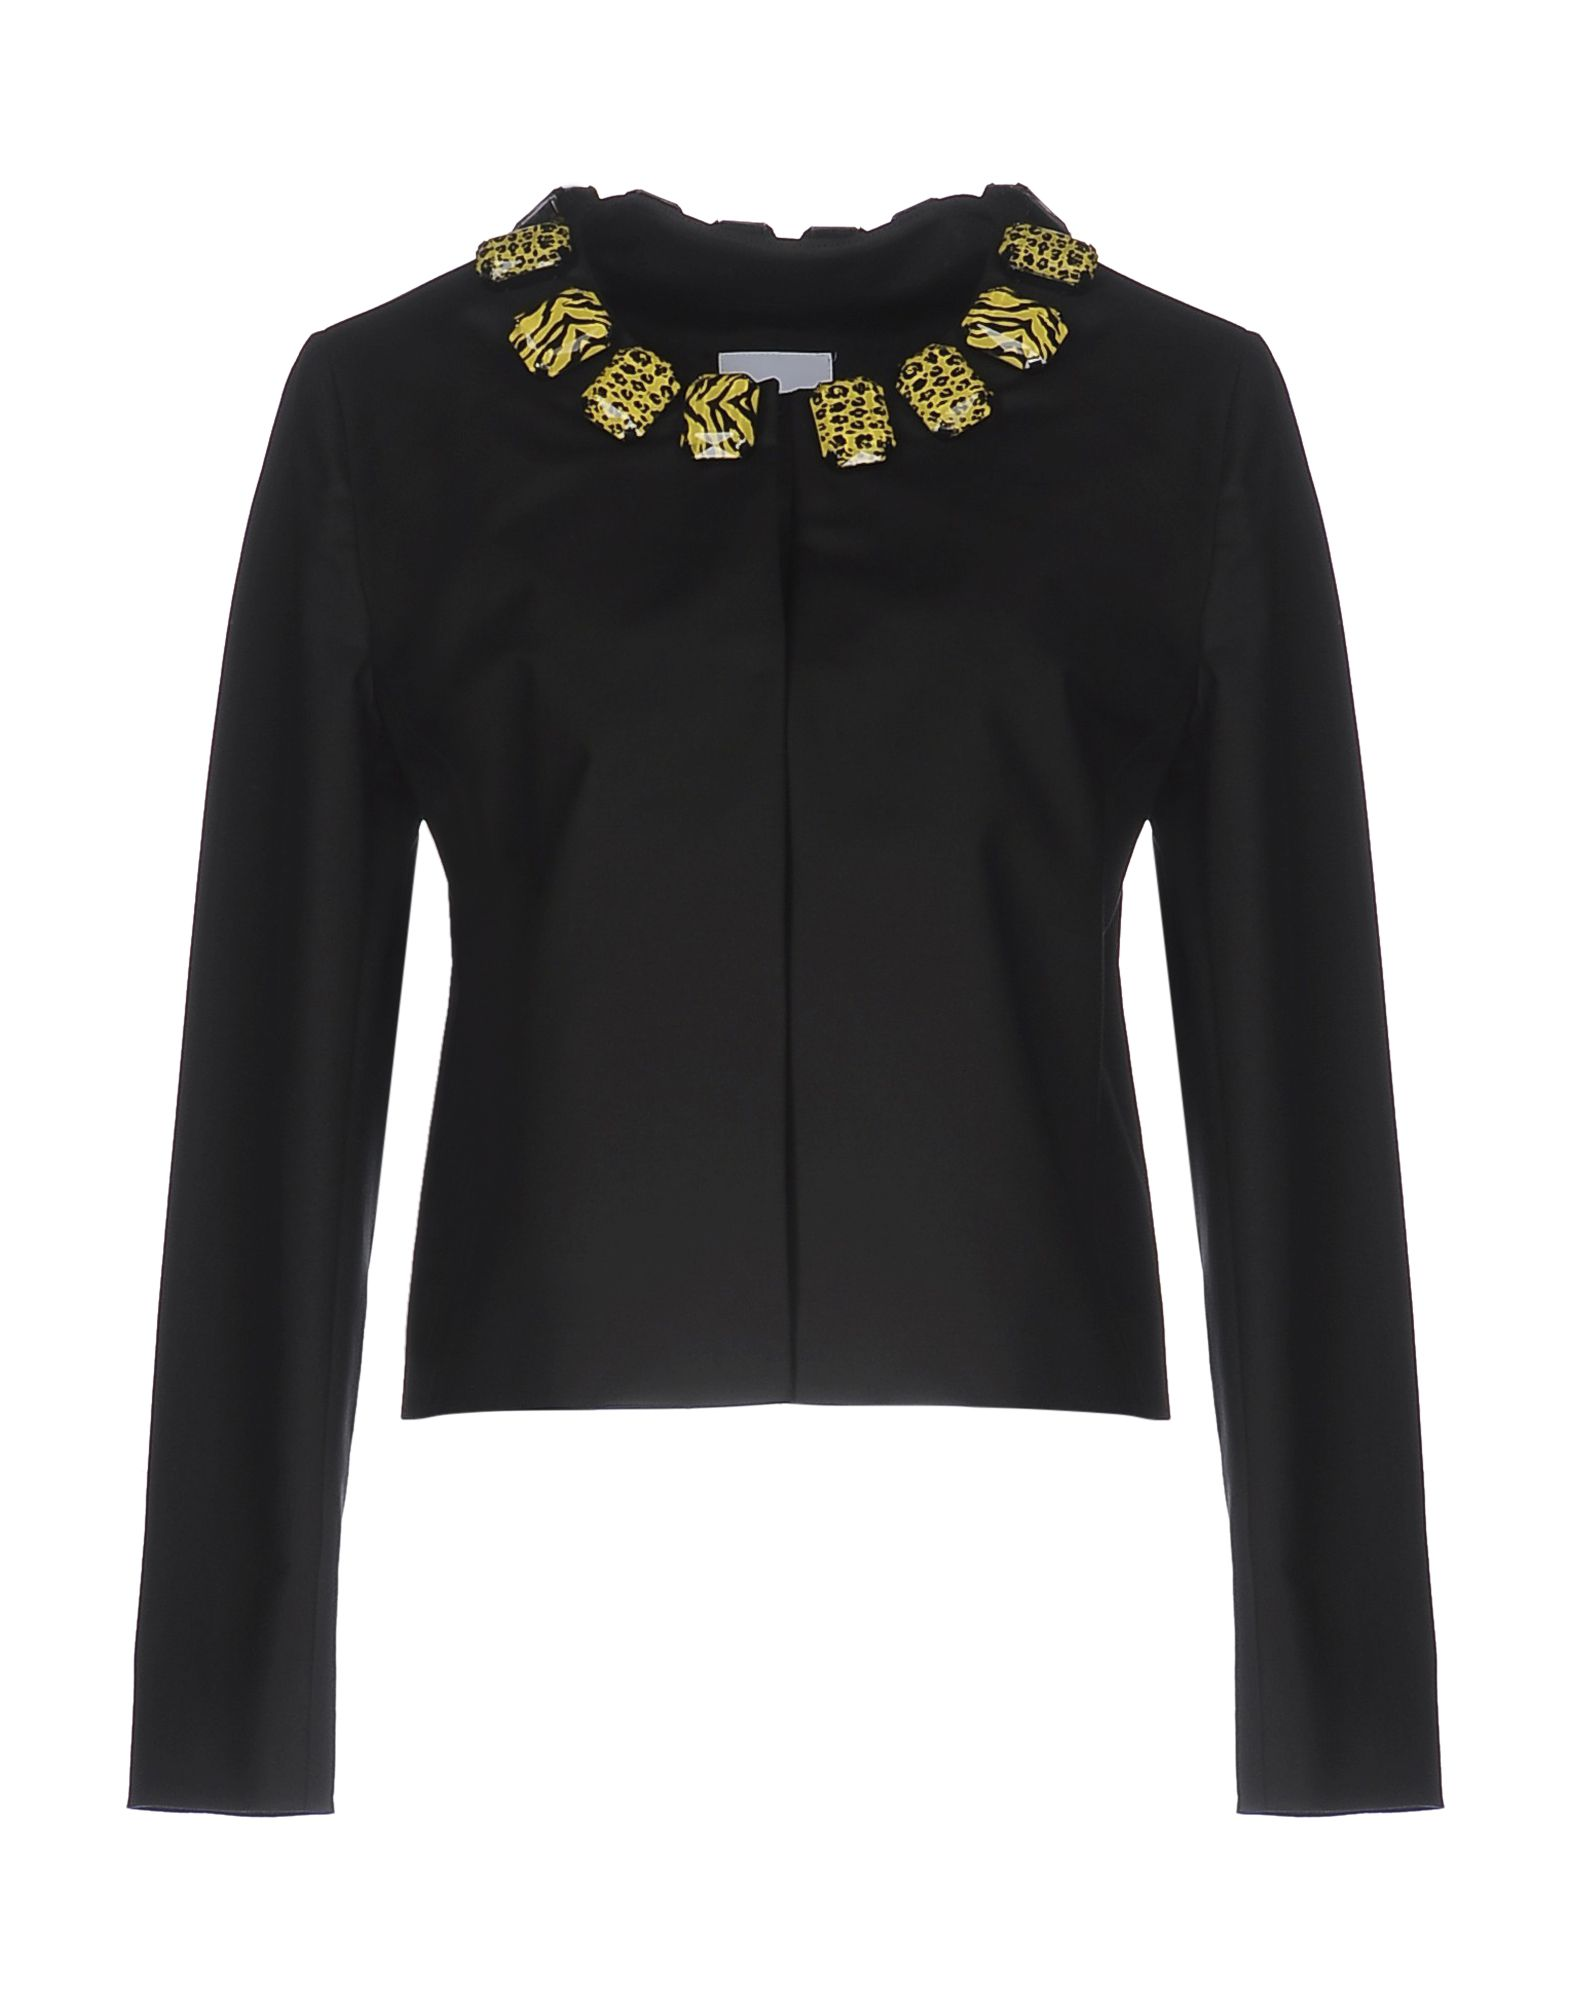 Giacca Moschino Cheap And Chic Donna - Acquista online su drZLr3PwD